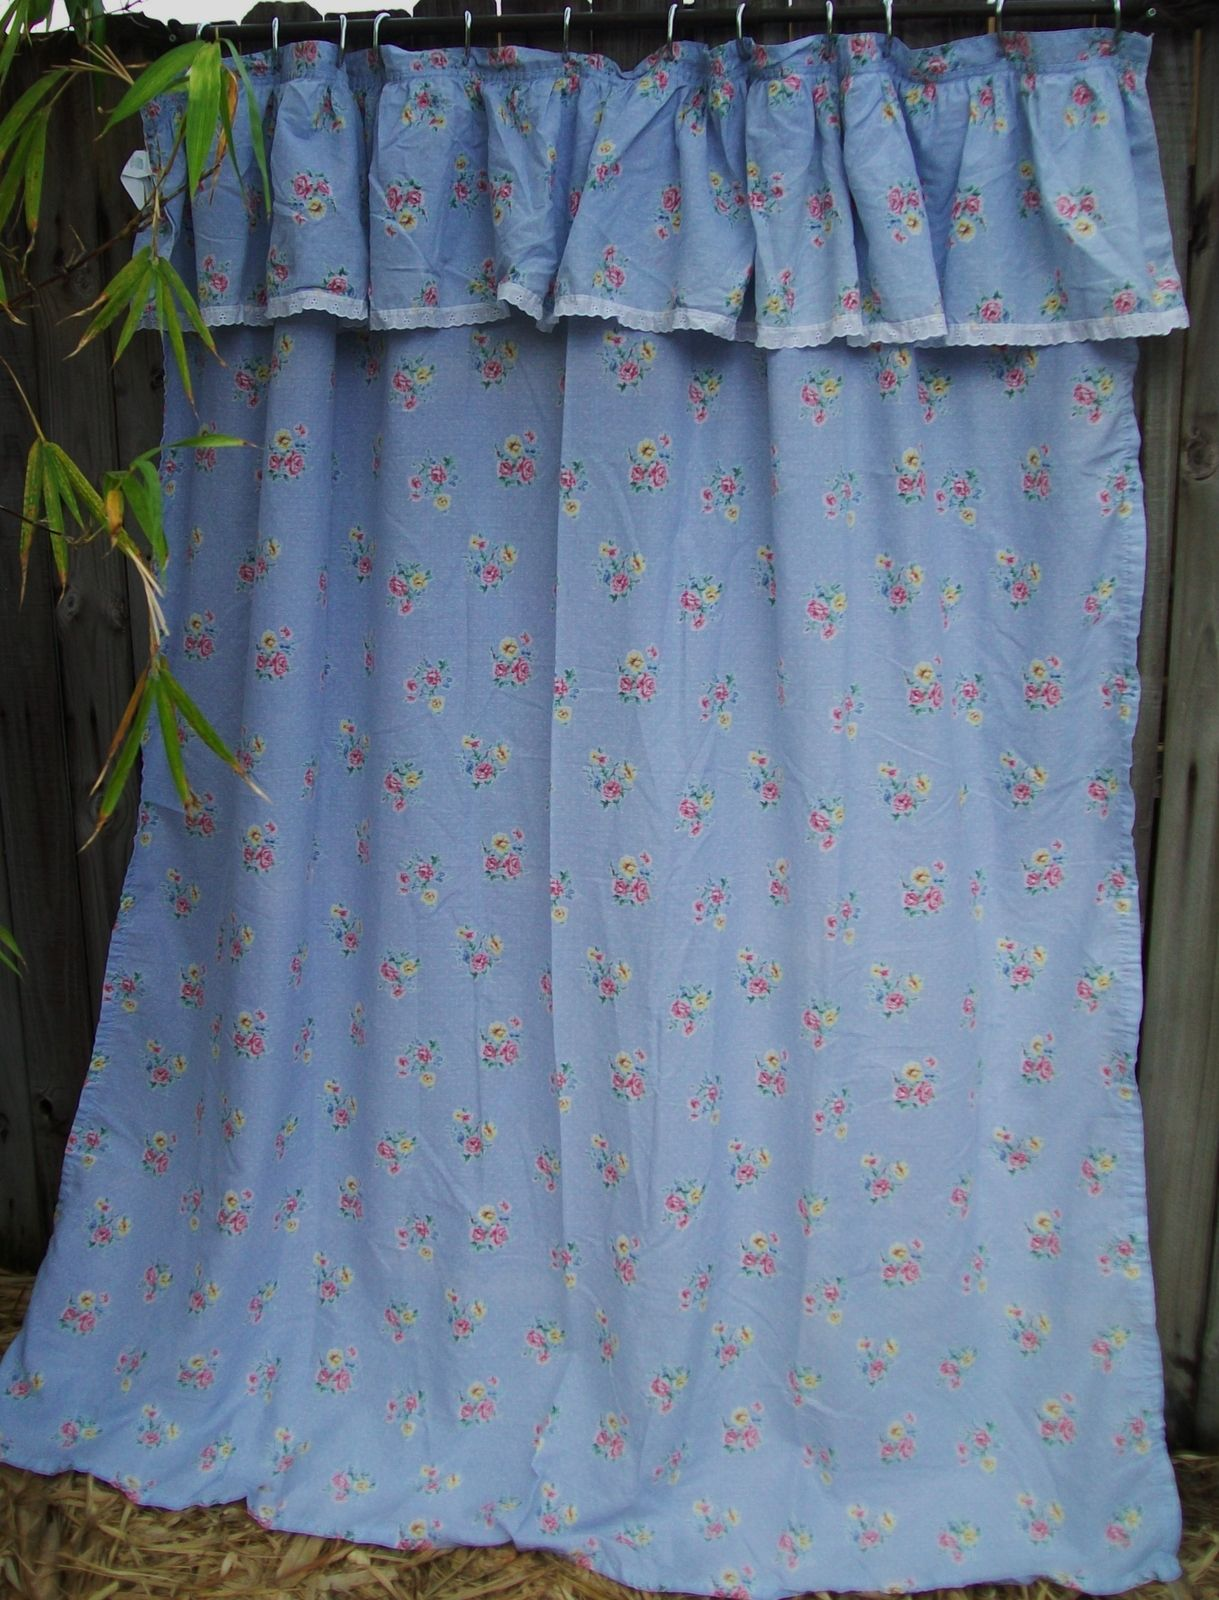 Light Blue Country Floral Fabric Shower Curtain With Lace ...